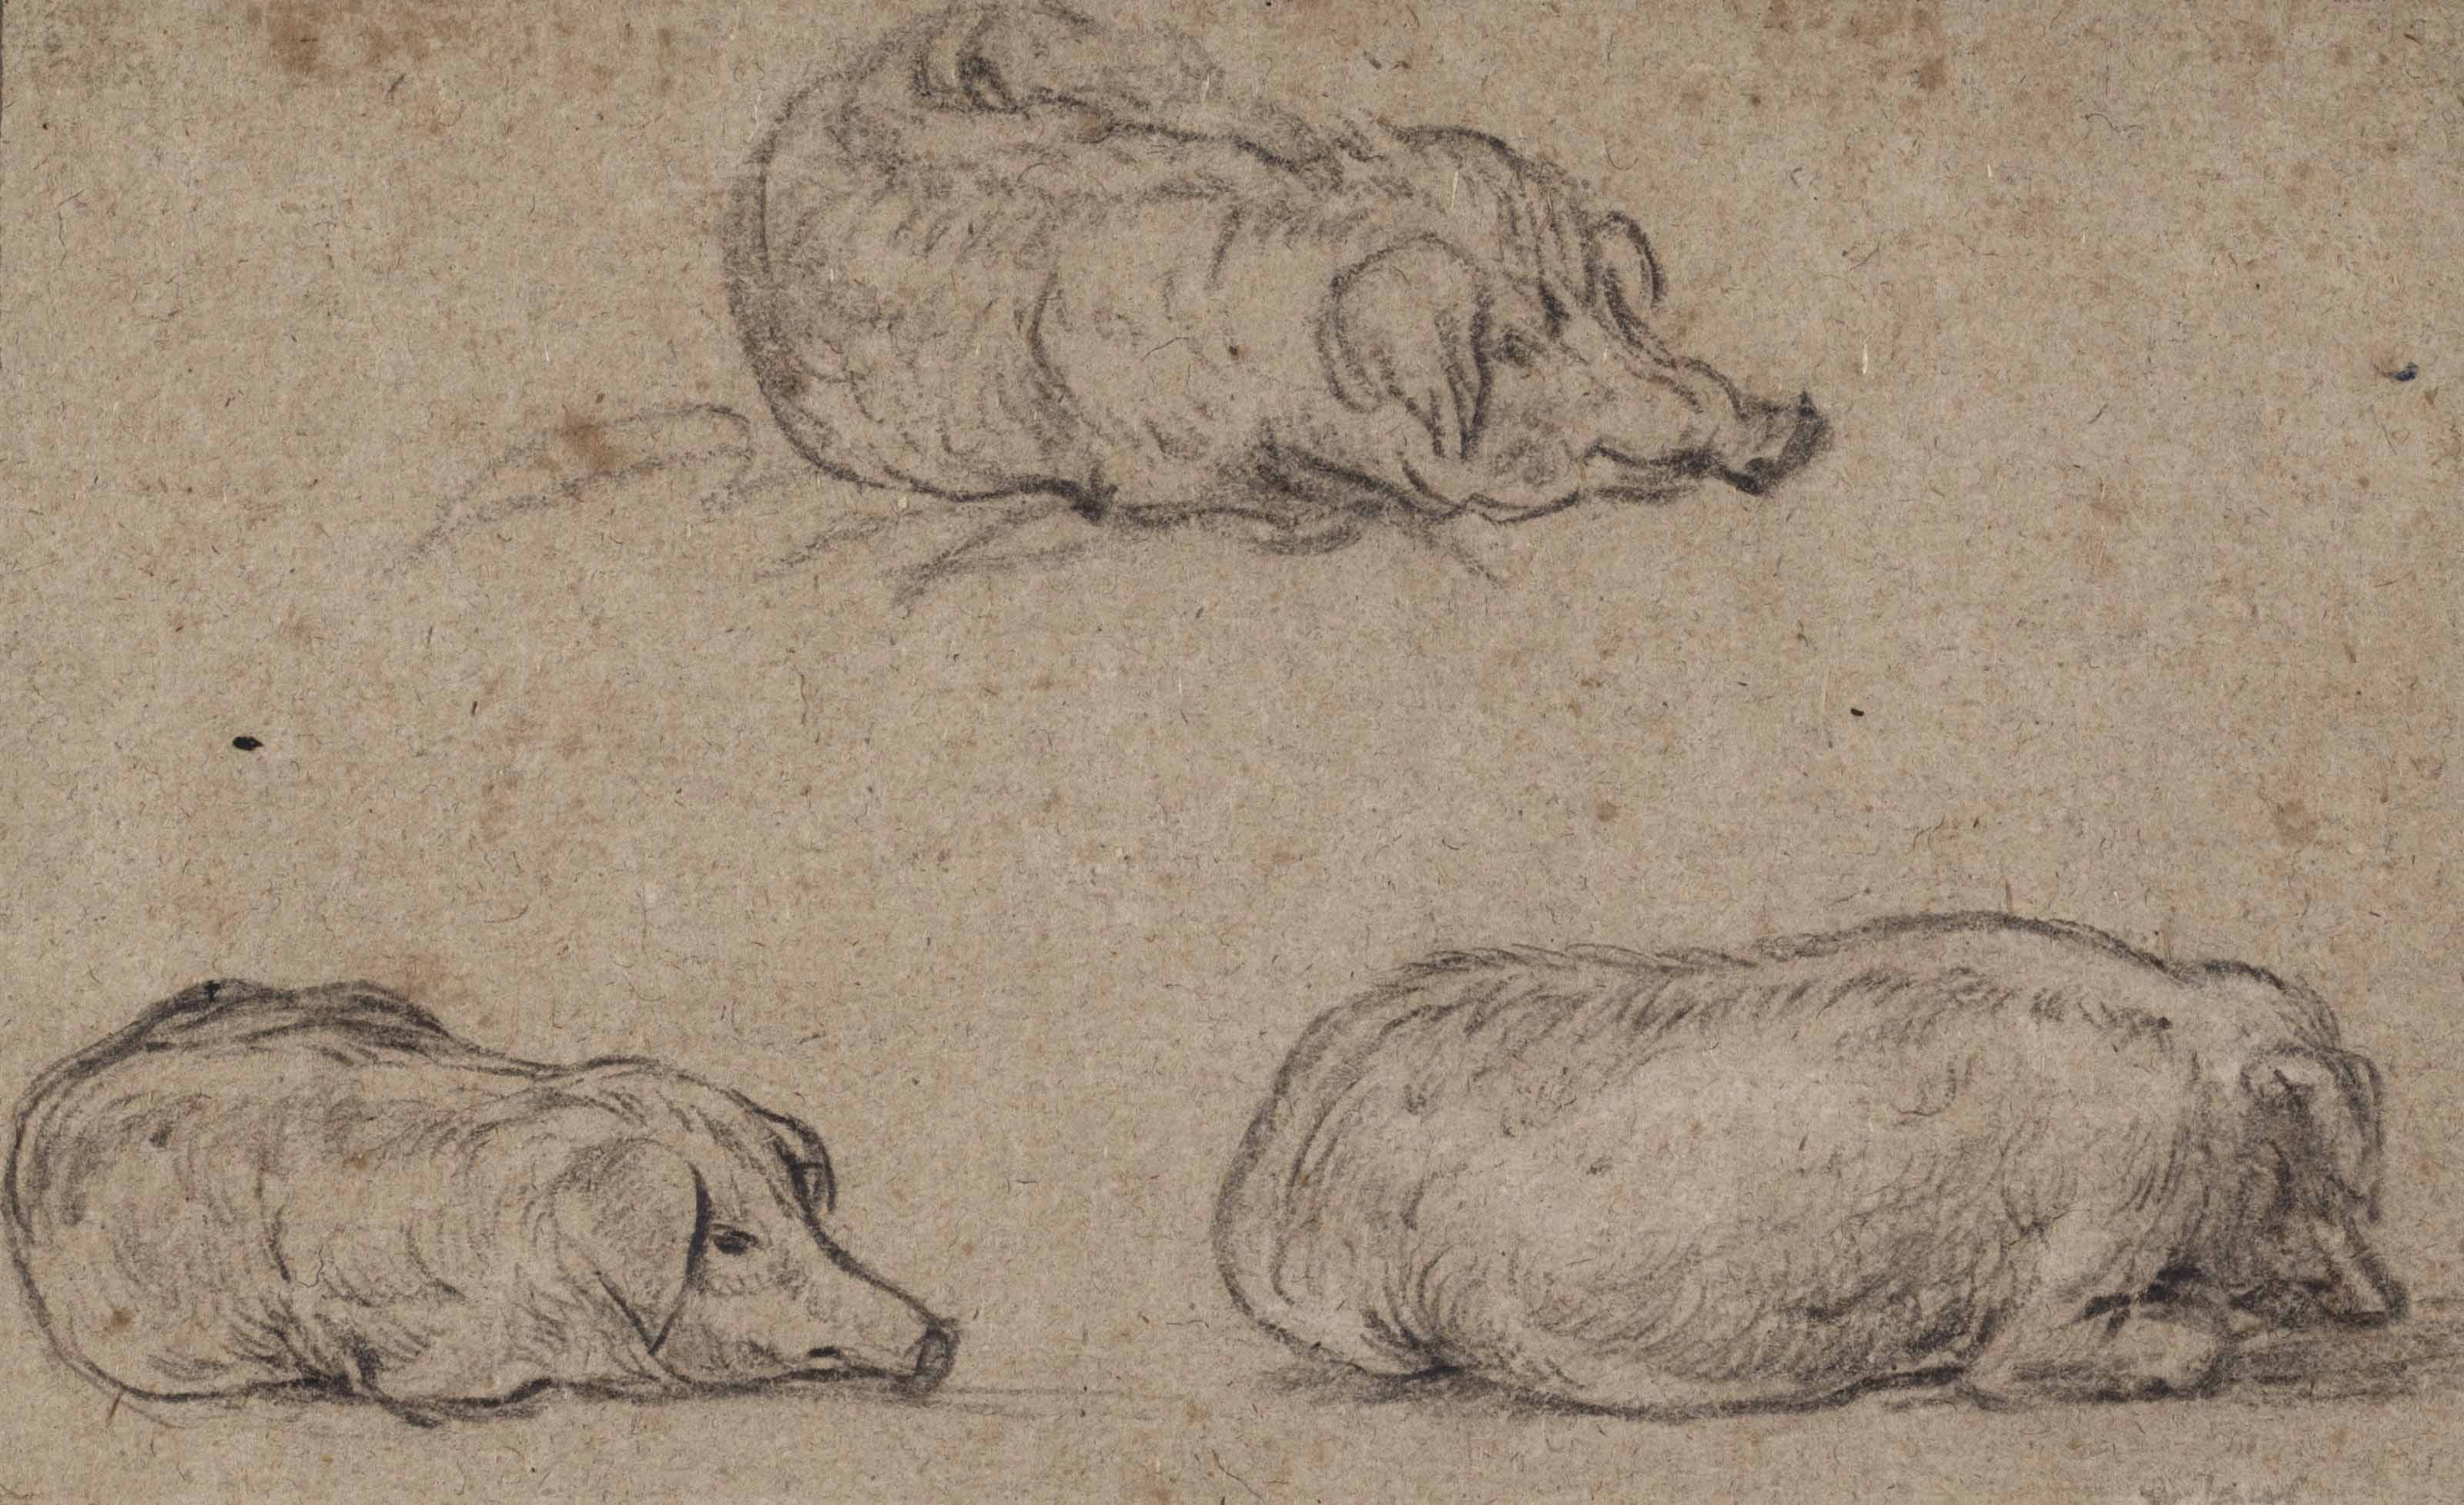 Three studies of a recumbent pig